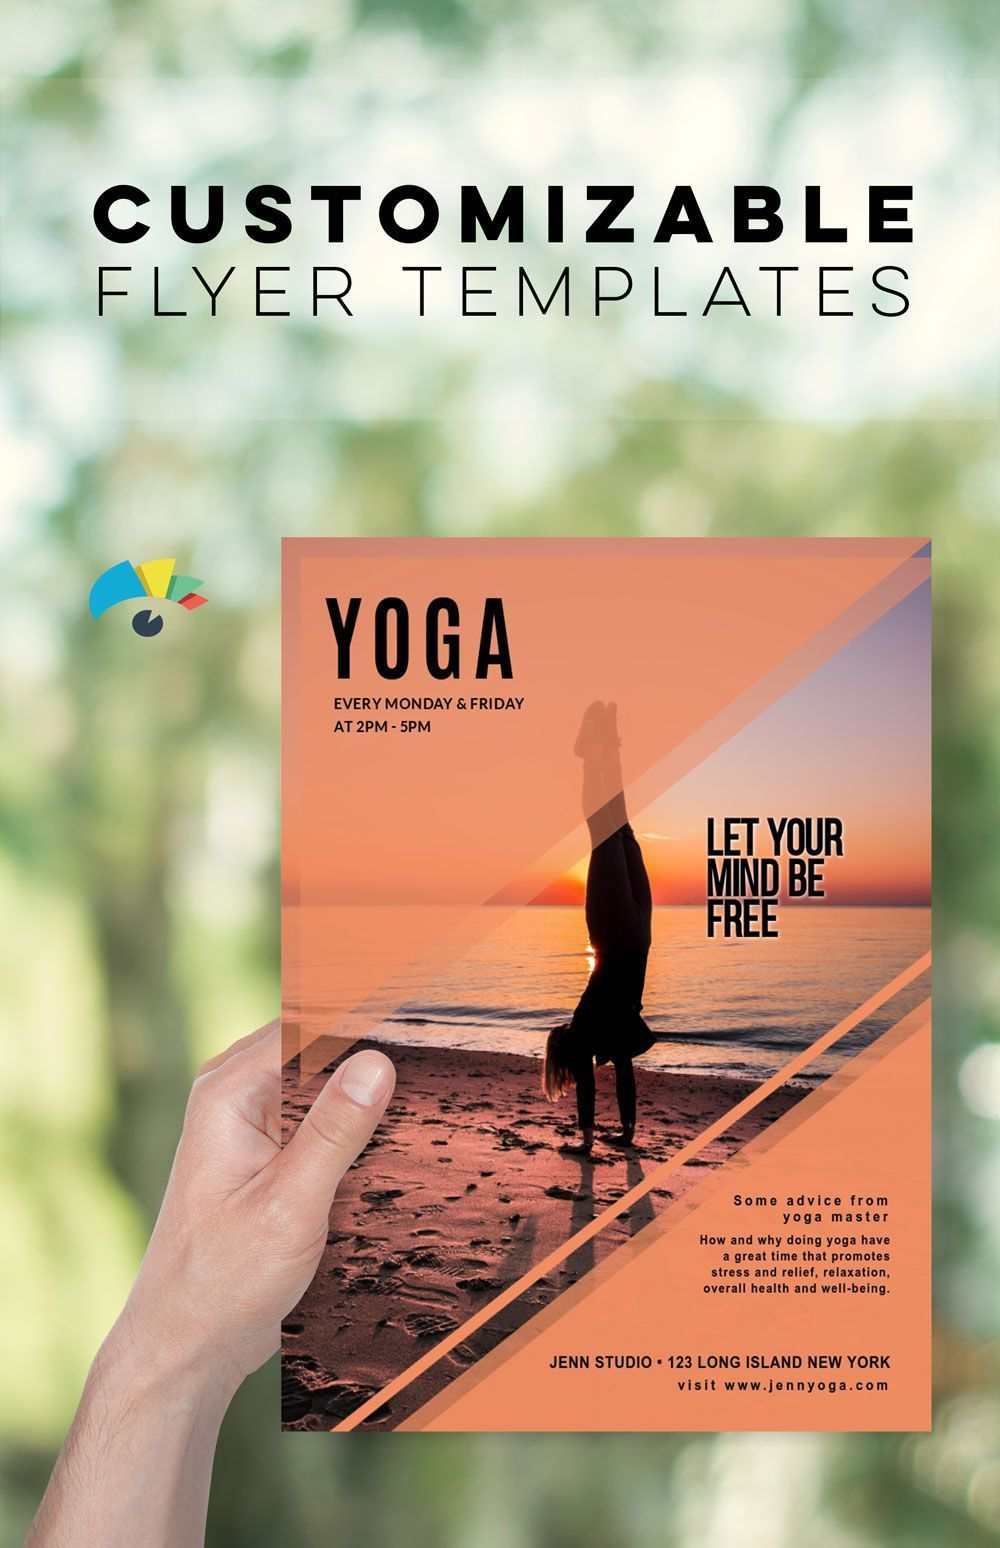 Yoga Flyer Template for your own yoga school or private